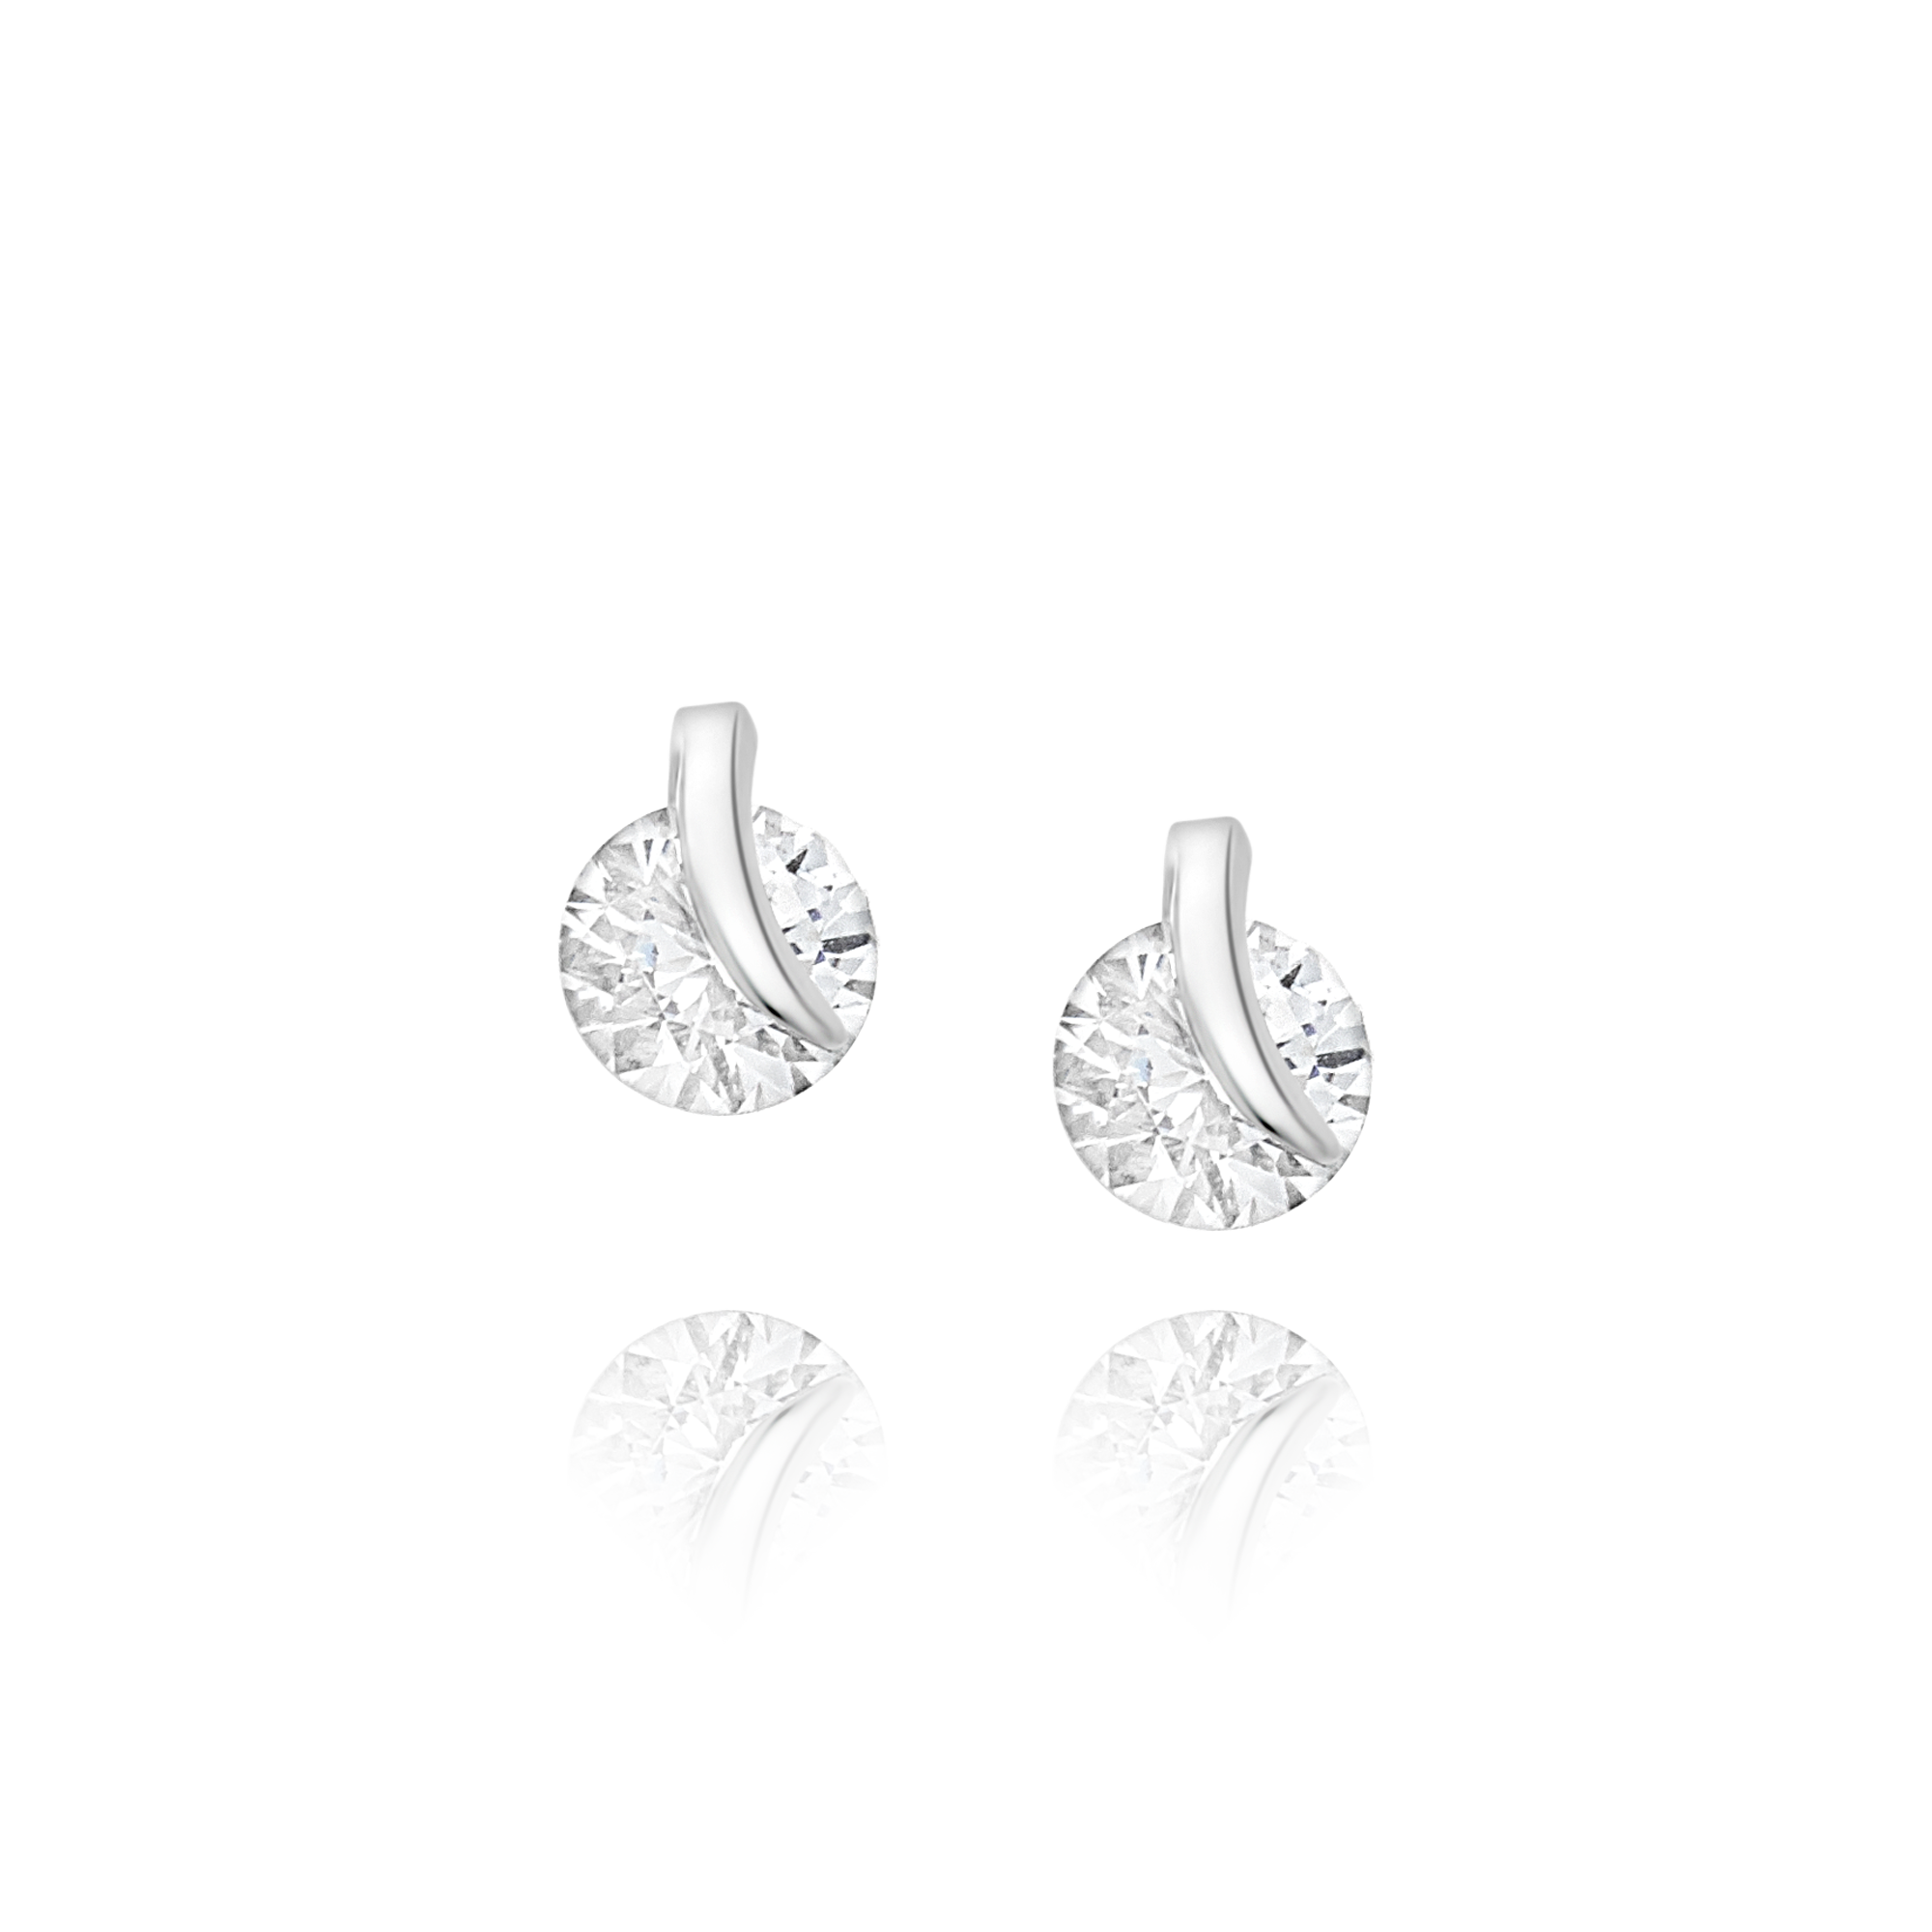 Cubic Zirconia and White Gold Earrings